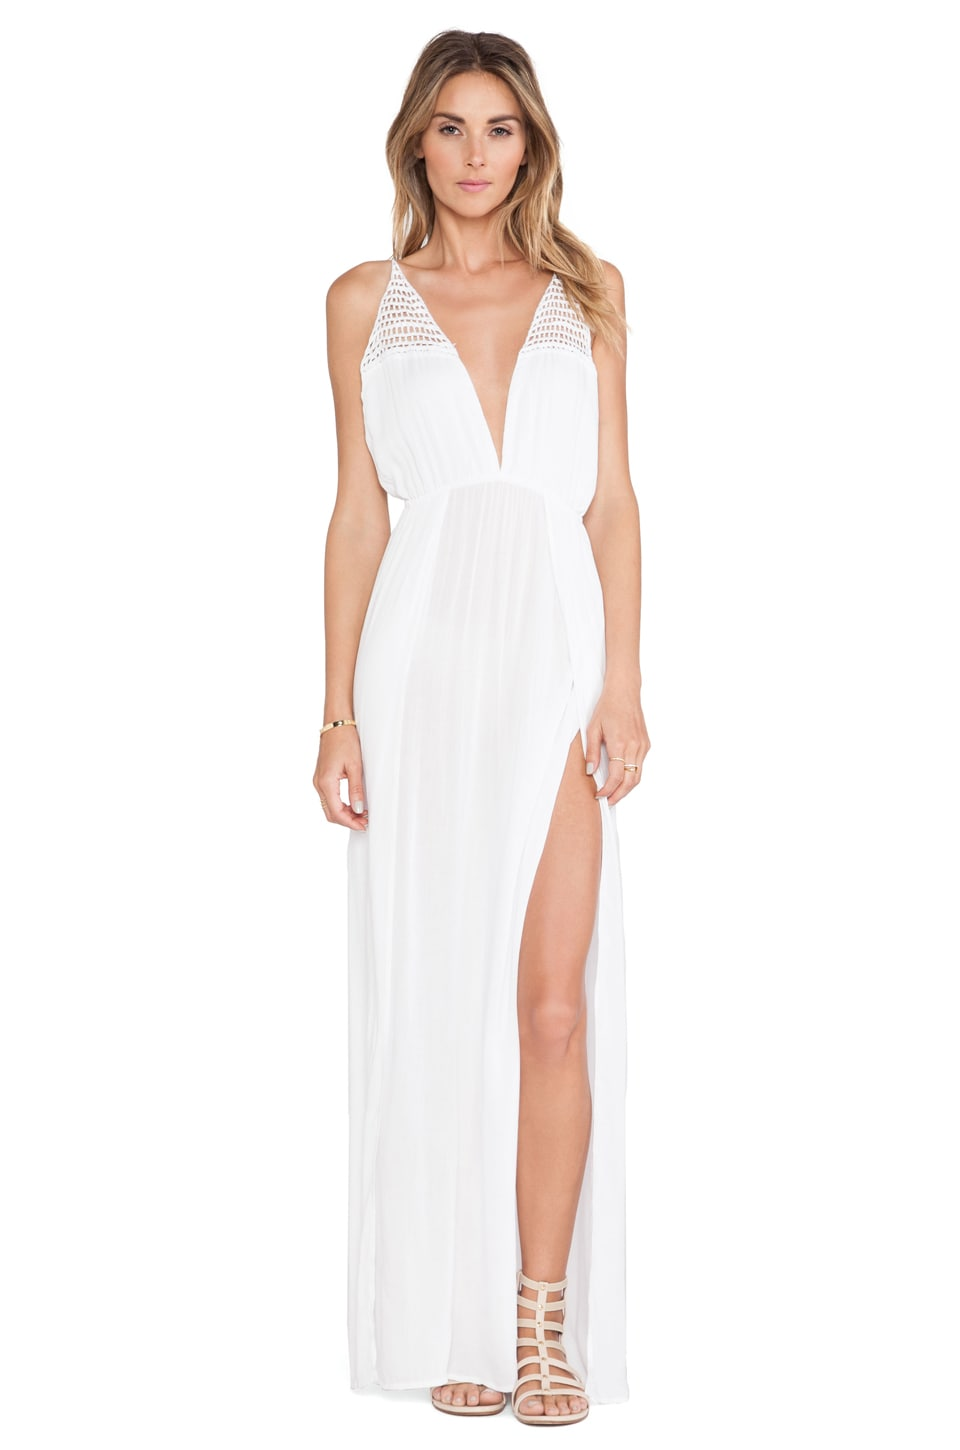 Indah X REVOLVE Isla Maxi Dress in White & Crochet